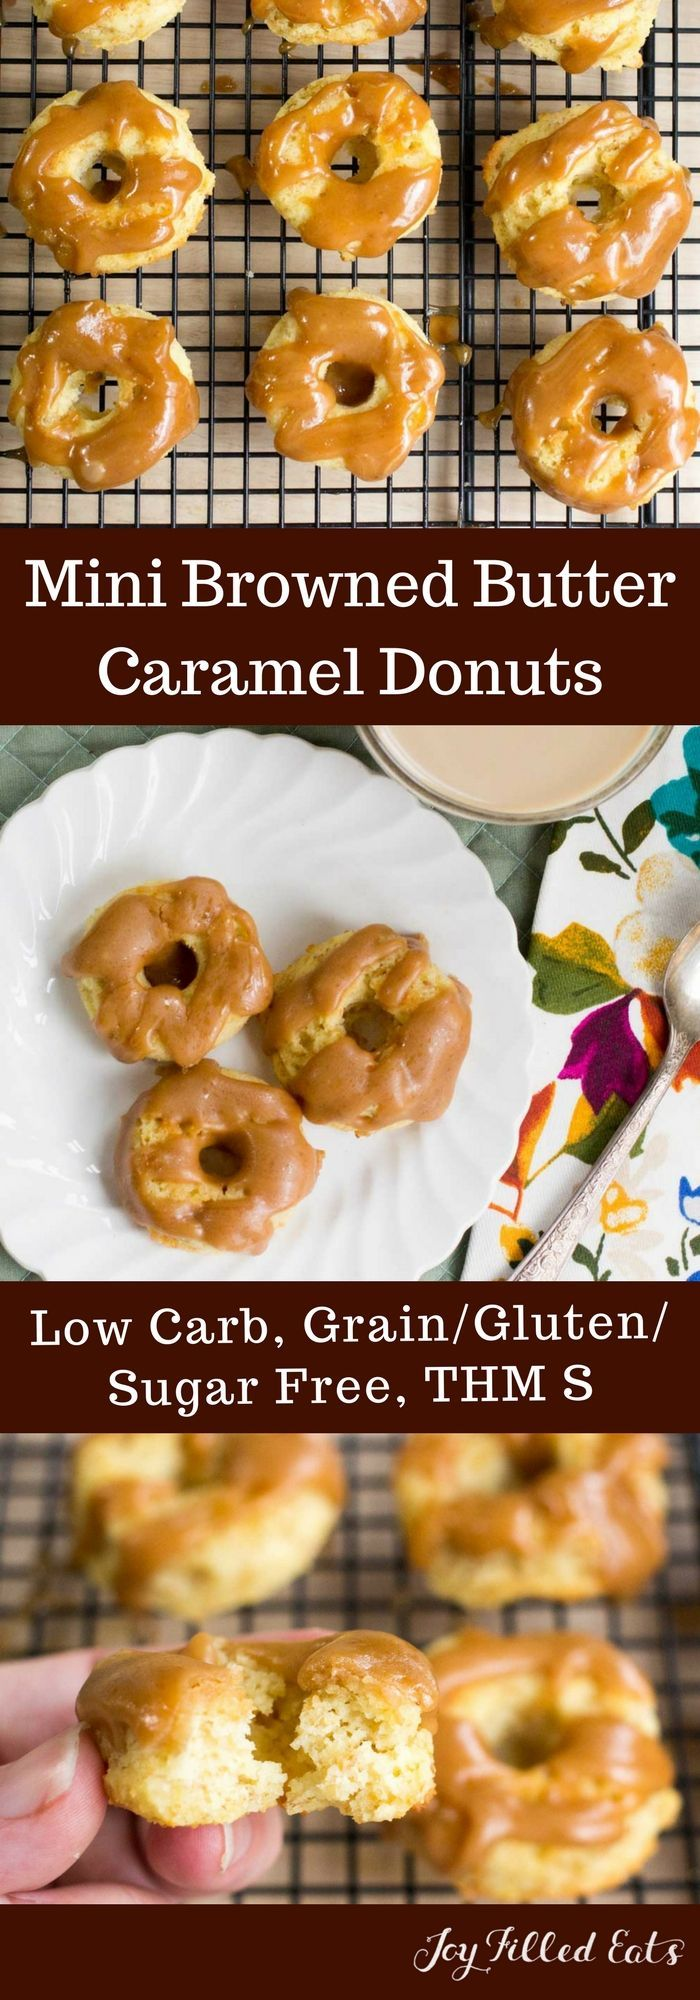 Mini Browned Butter Caramel Donuts - Low Carb, Grain/Gluten/Sugar Free, THM S - These are the perfect addition to your Easter brunch. The donuts are light and moist and the browned butter caramel topping is rich and sweet with a hint of salt. #ad via @joyfilledeats @finlan